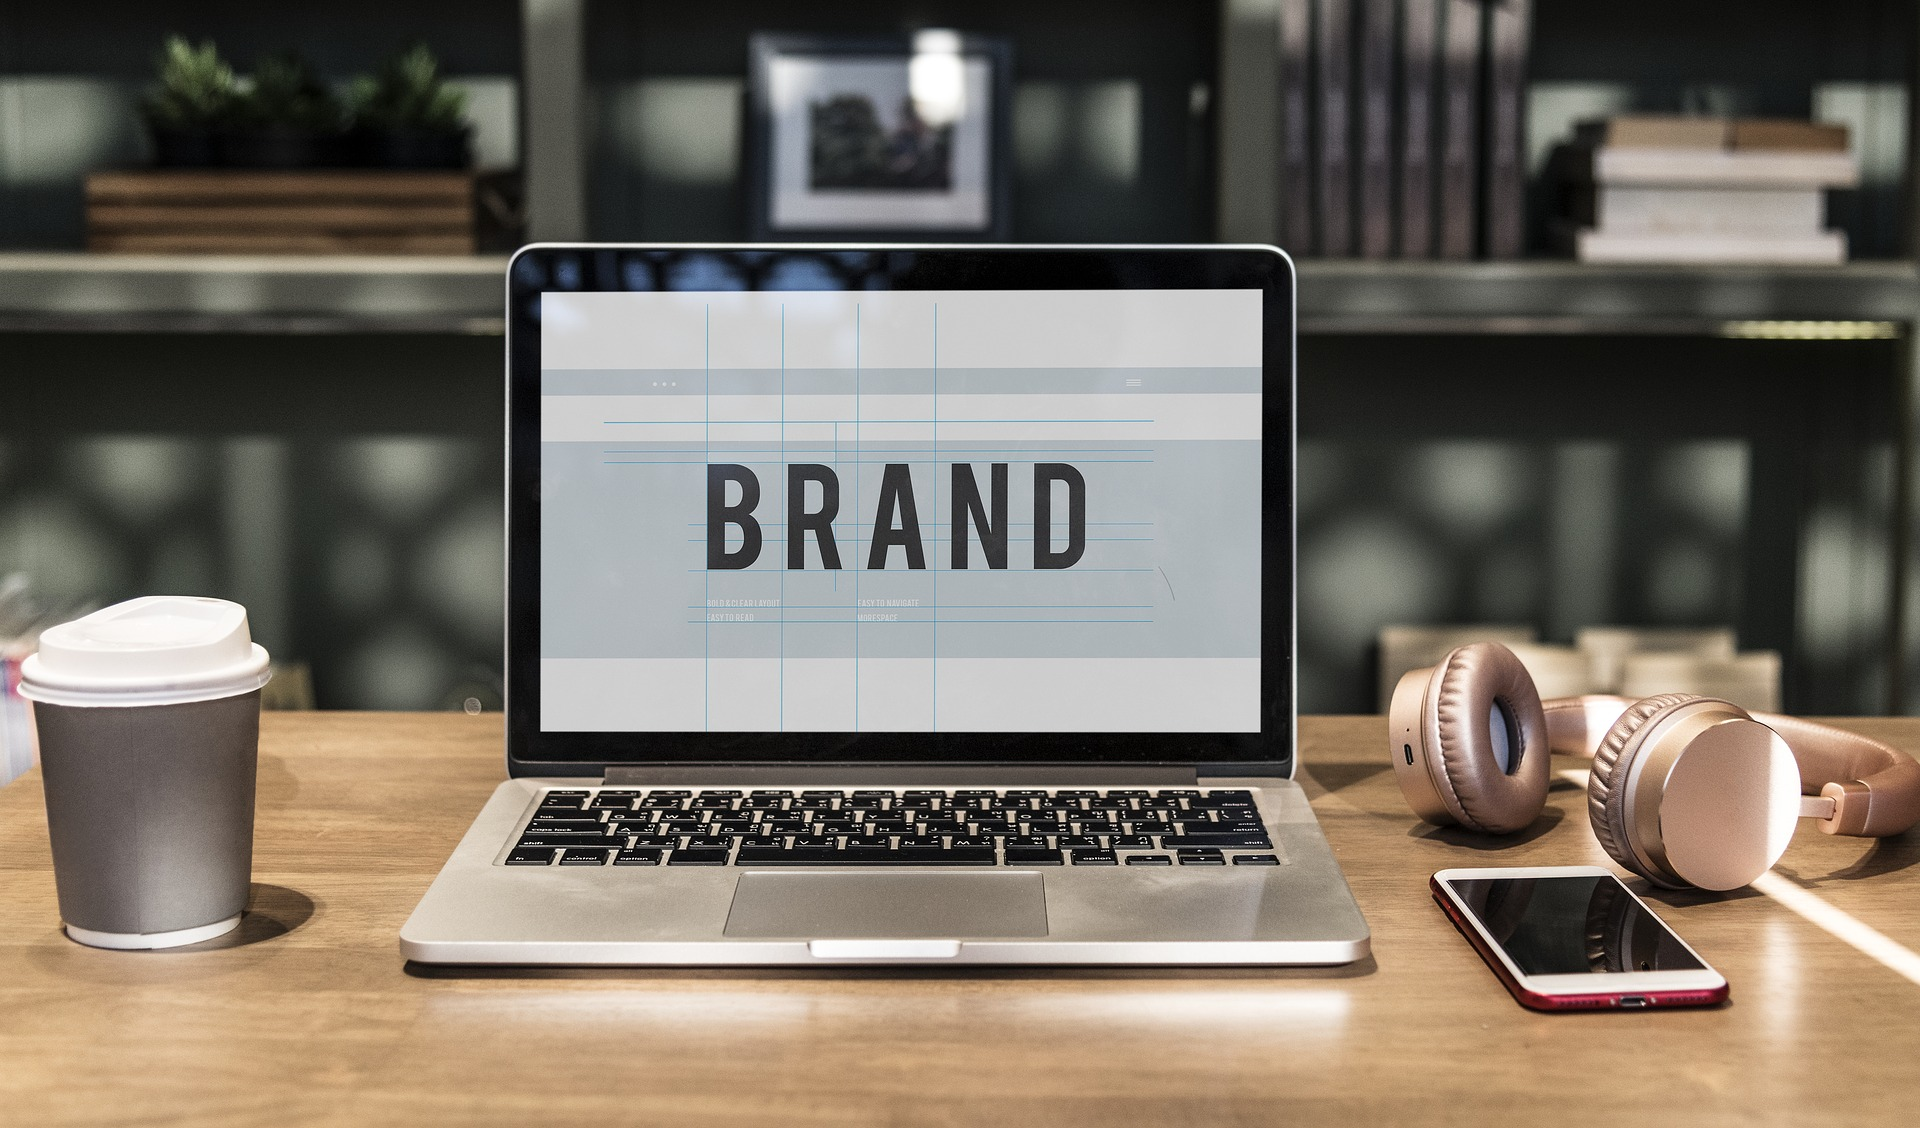 Build a Sustainable Business Brand